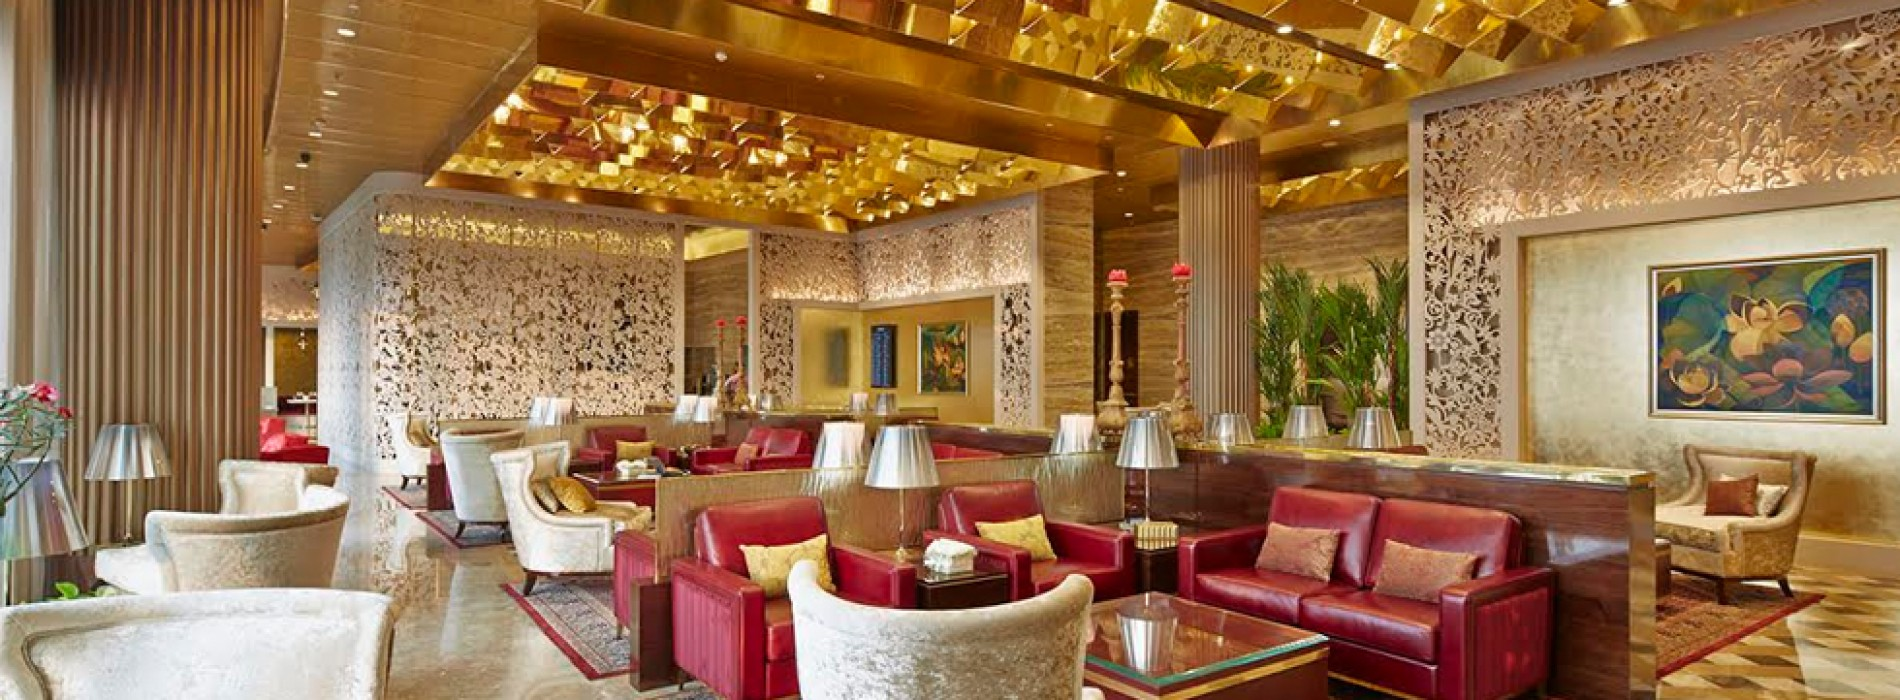 GVK Lounge adjudged World's Leading First Class Airport Lounge at the World Travel Awards 2016